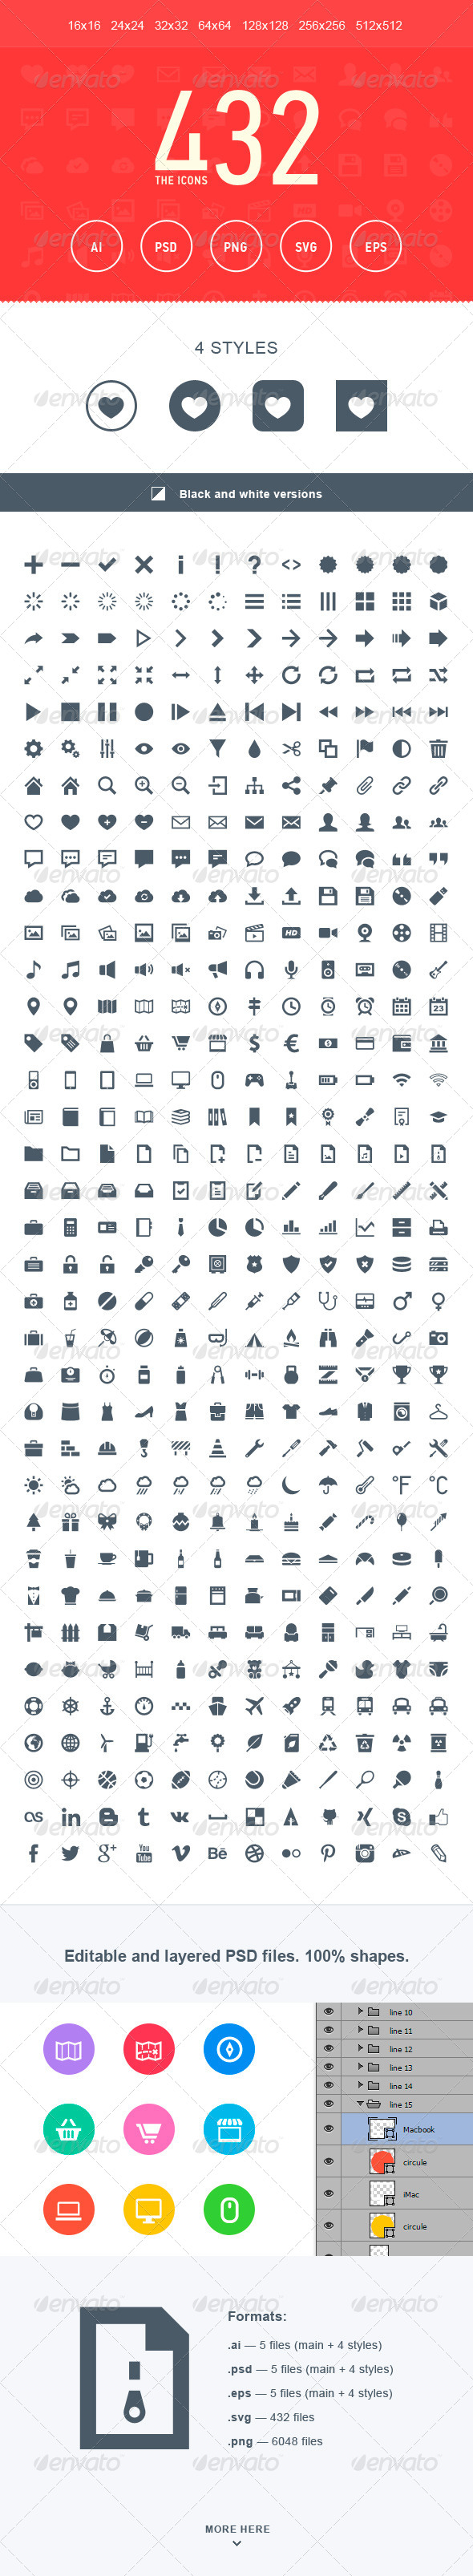 GraphicRiver The Icons 432 5489817